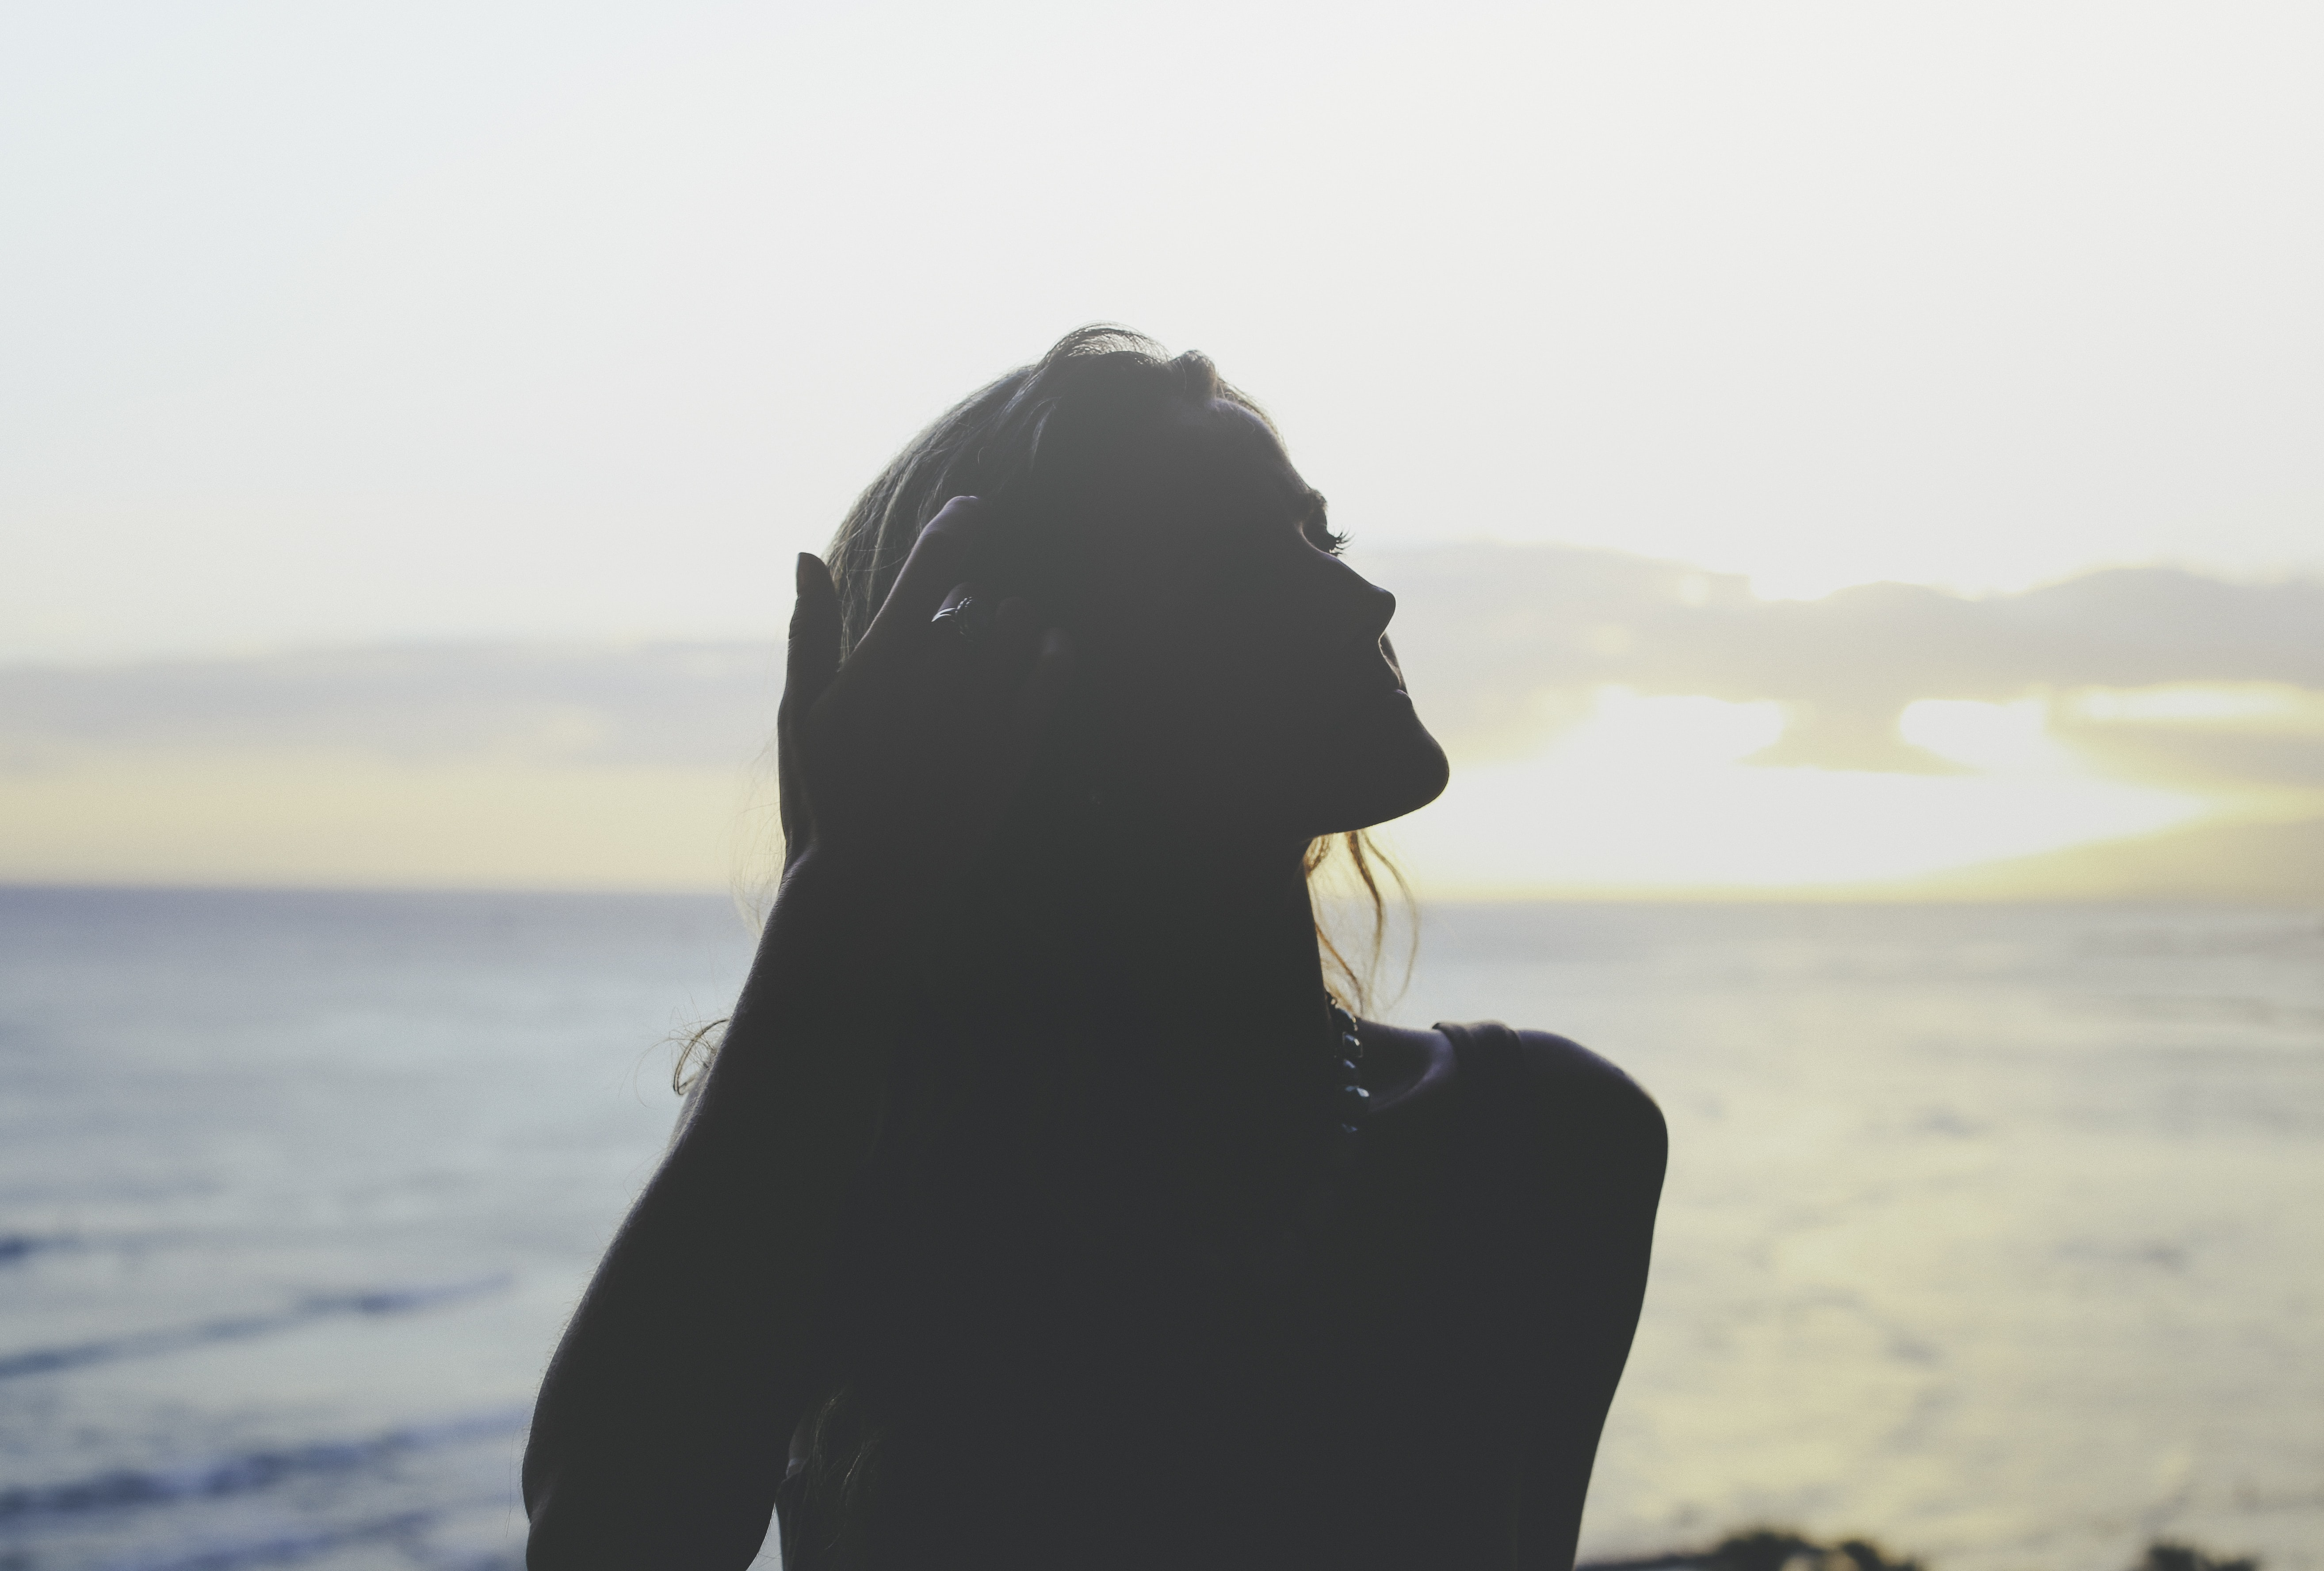 Silhouette of a woman standing in the shadows near the ocean at sunset